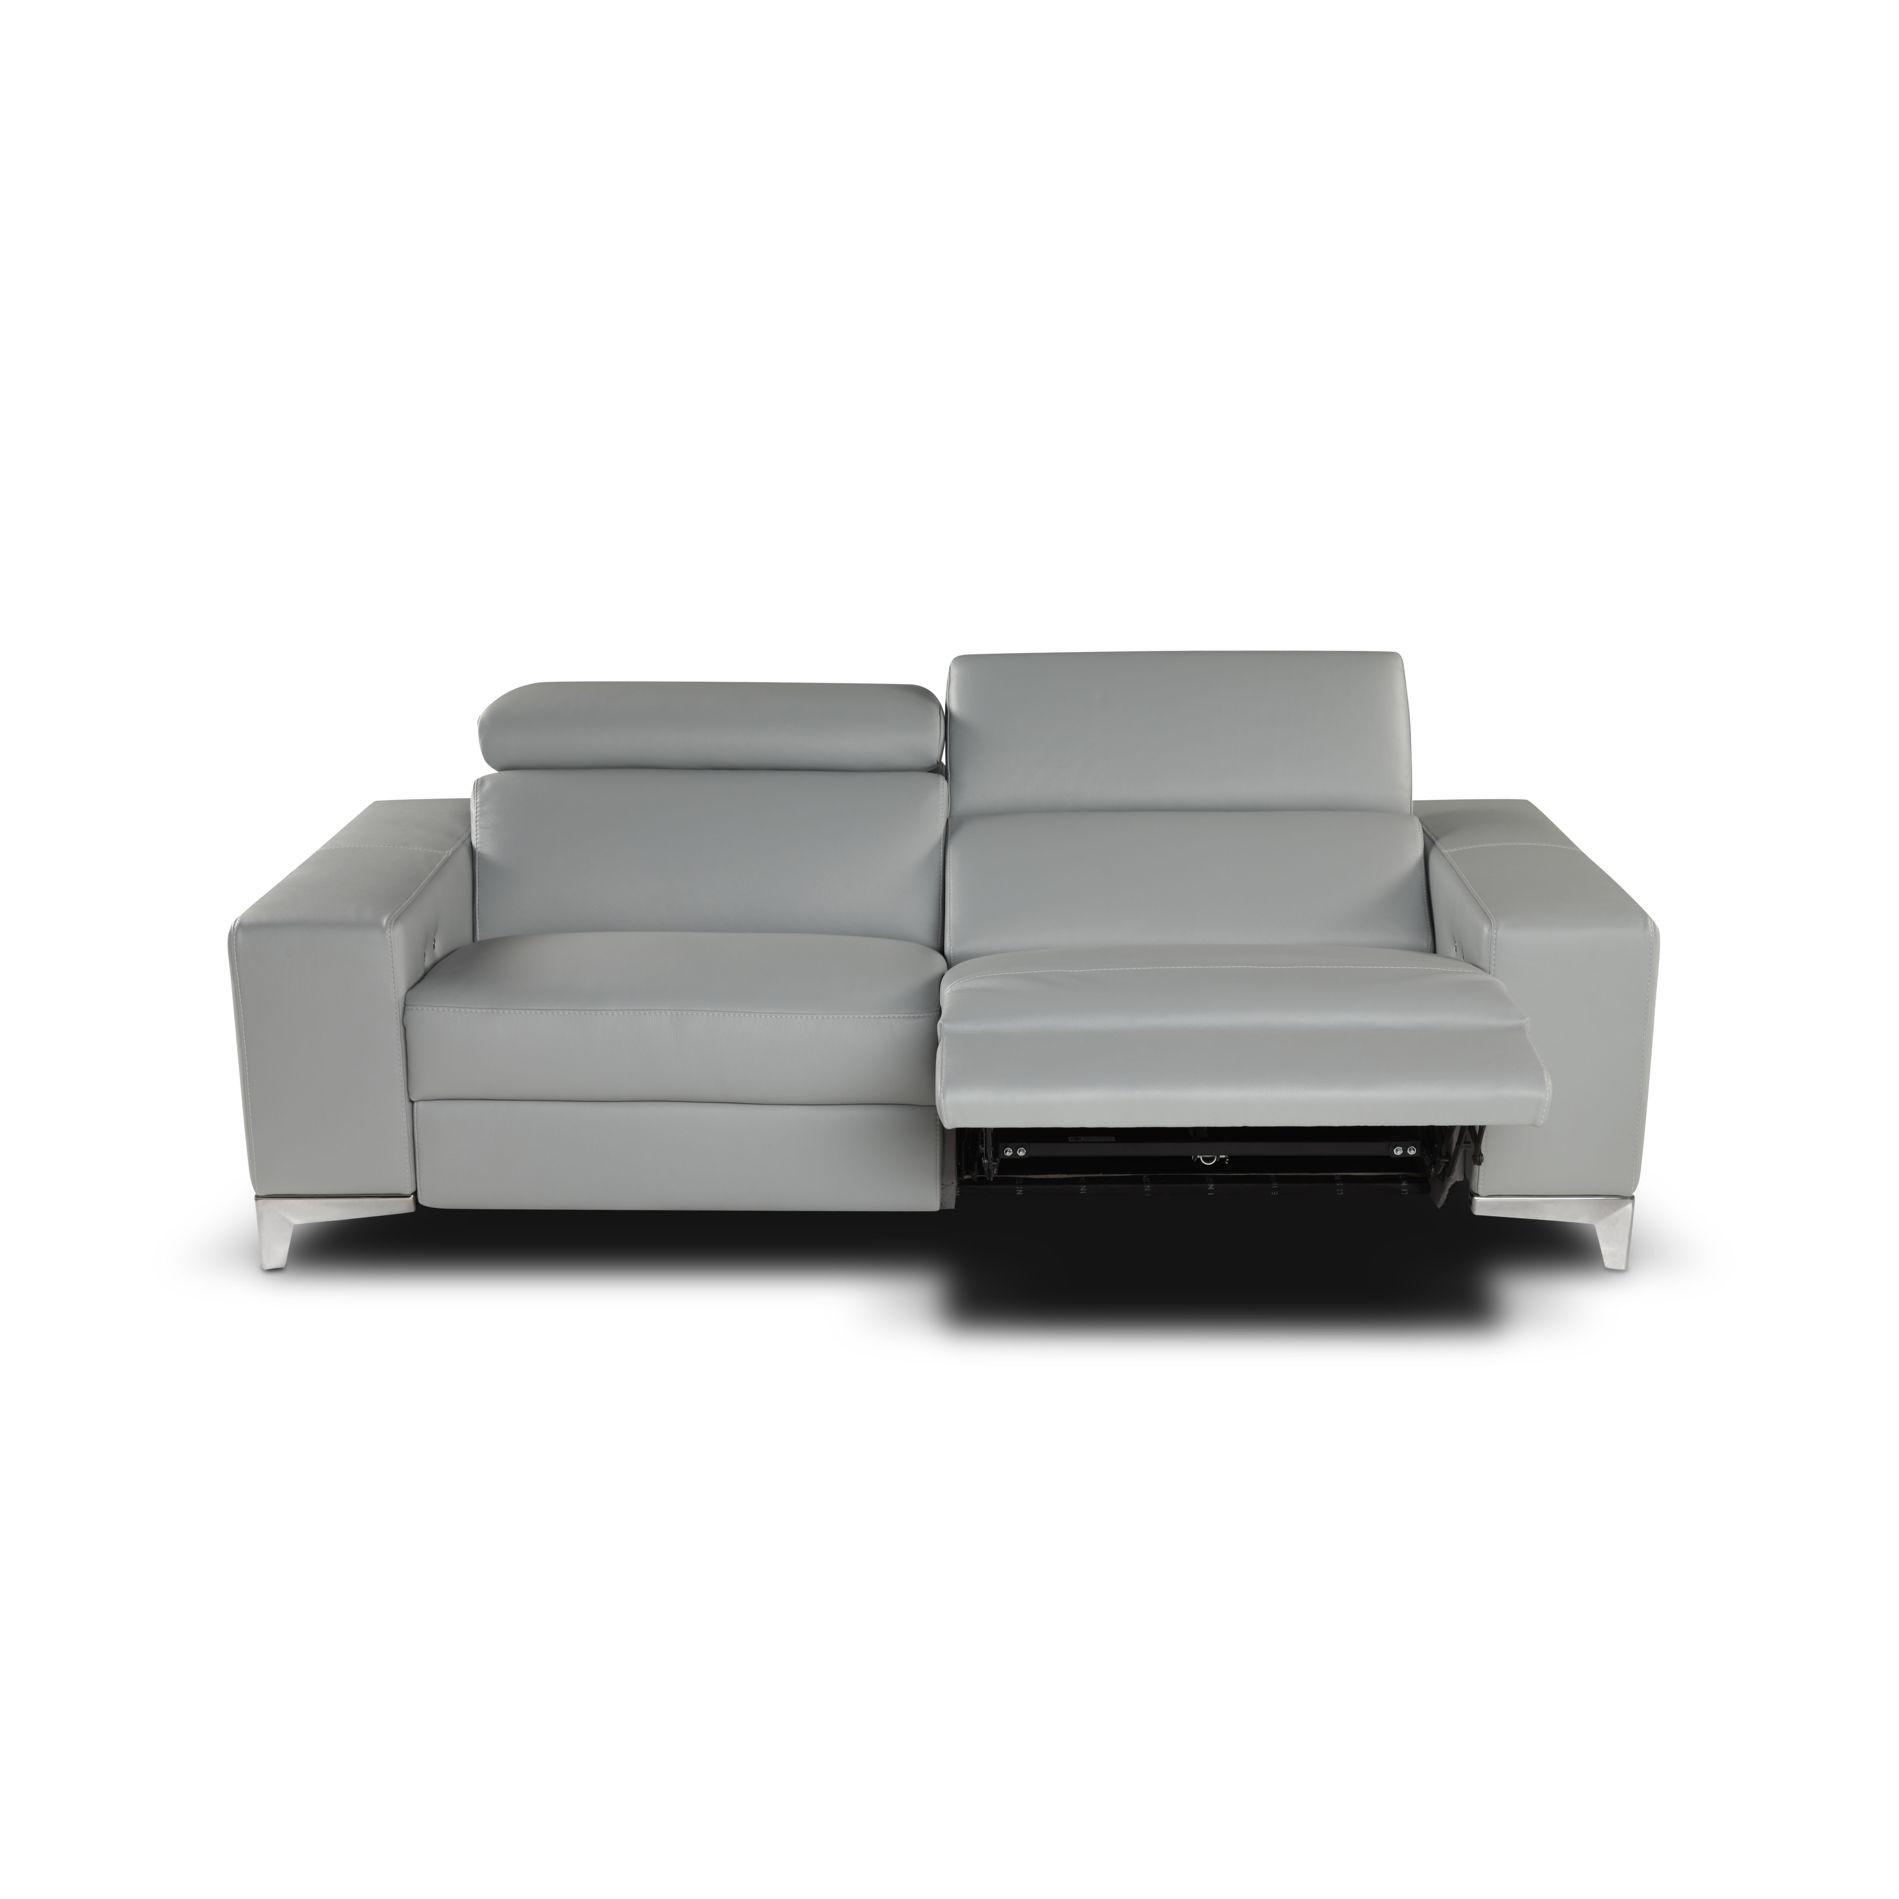 Electric Sofa Beds 12 With Electric Sofa Beds | Realestateurl With Electric Sofa Beds (Image 6 of 20)